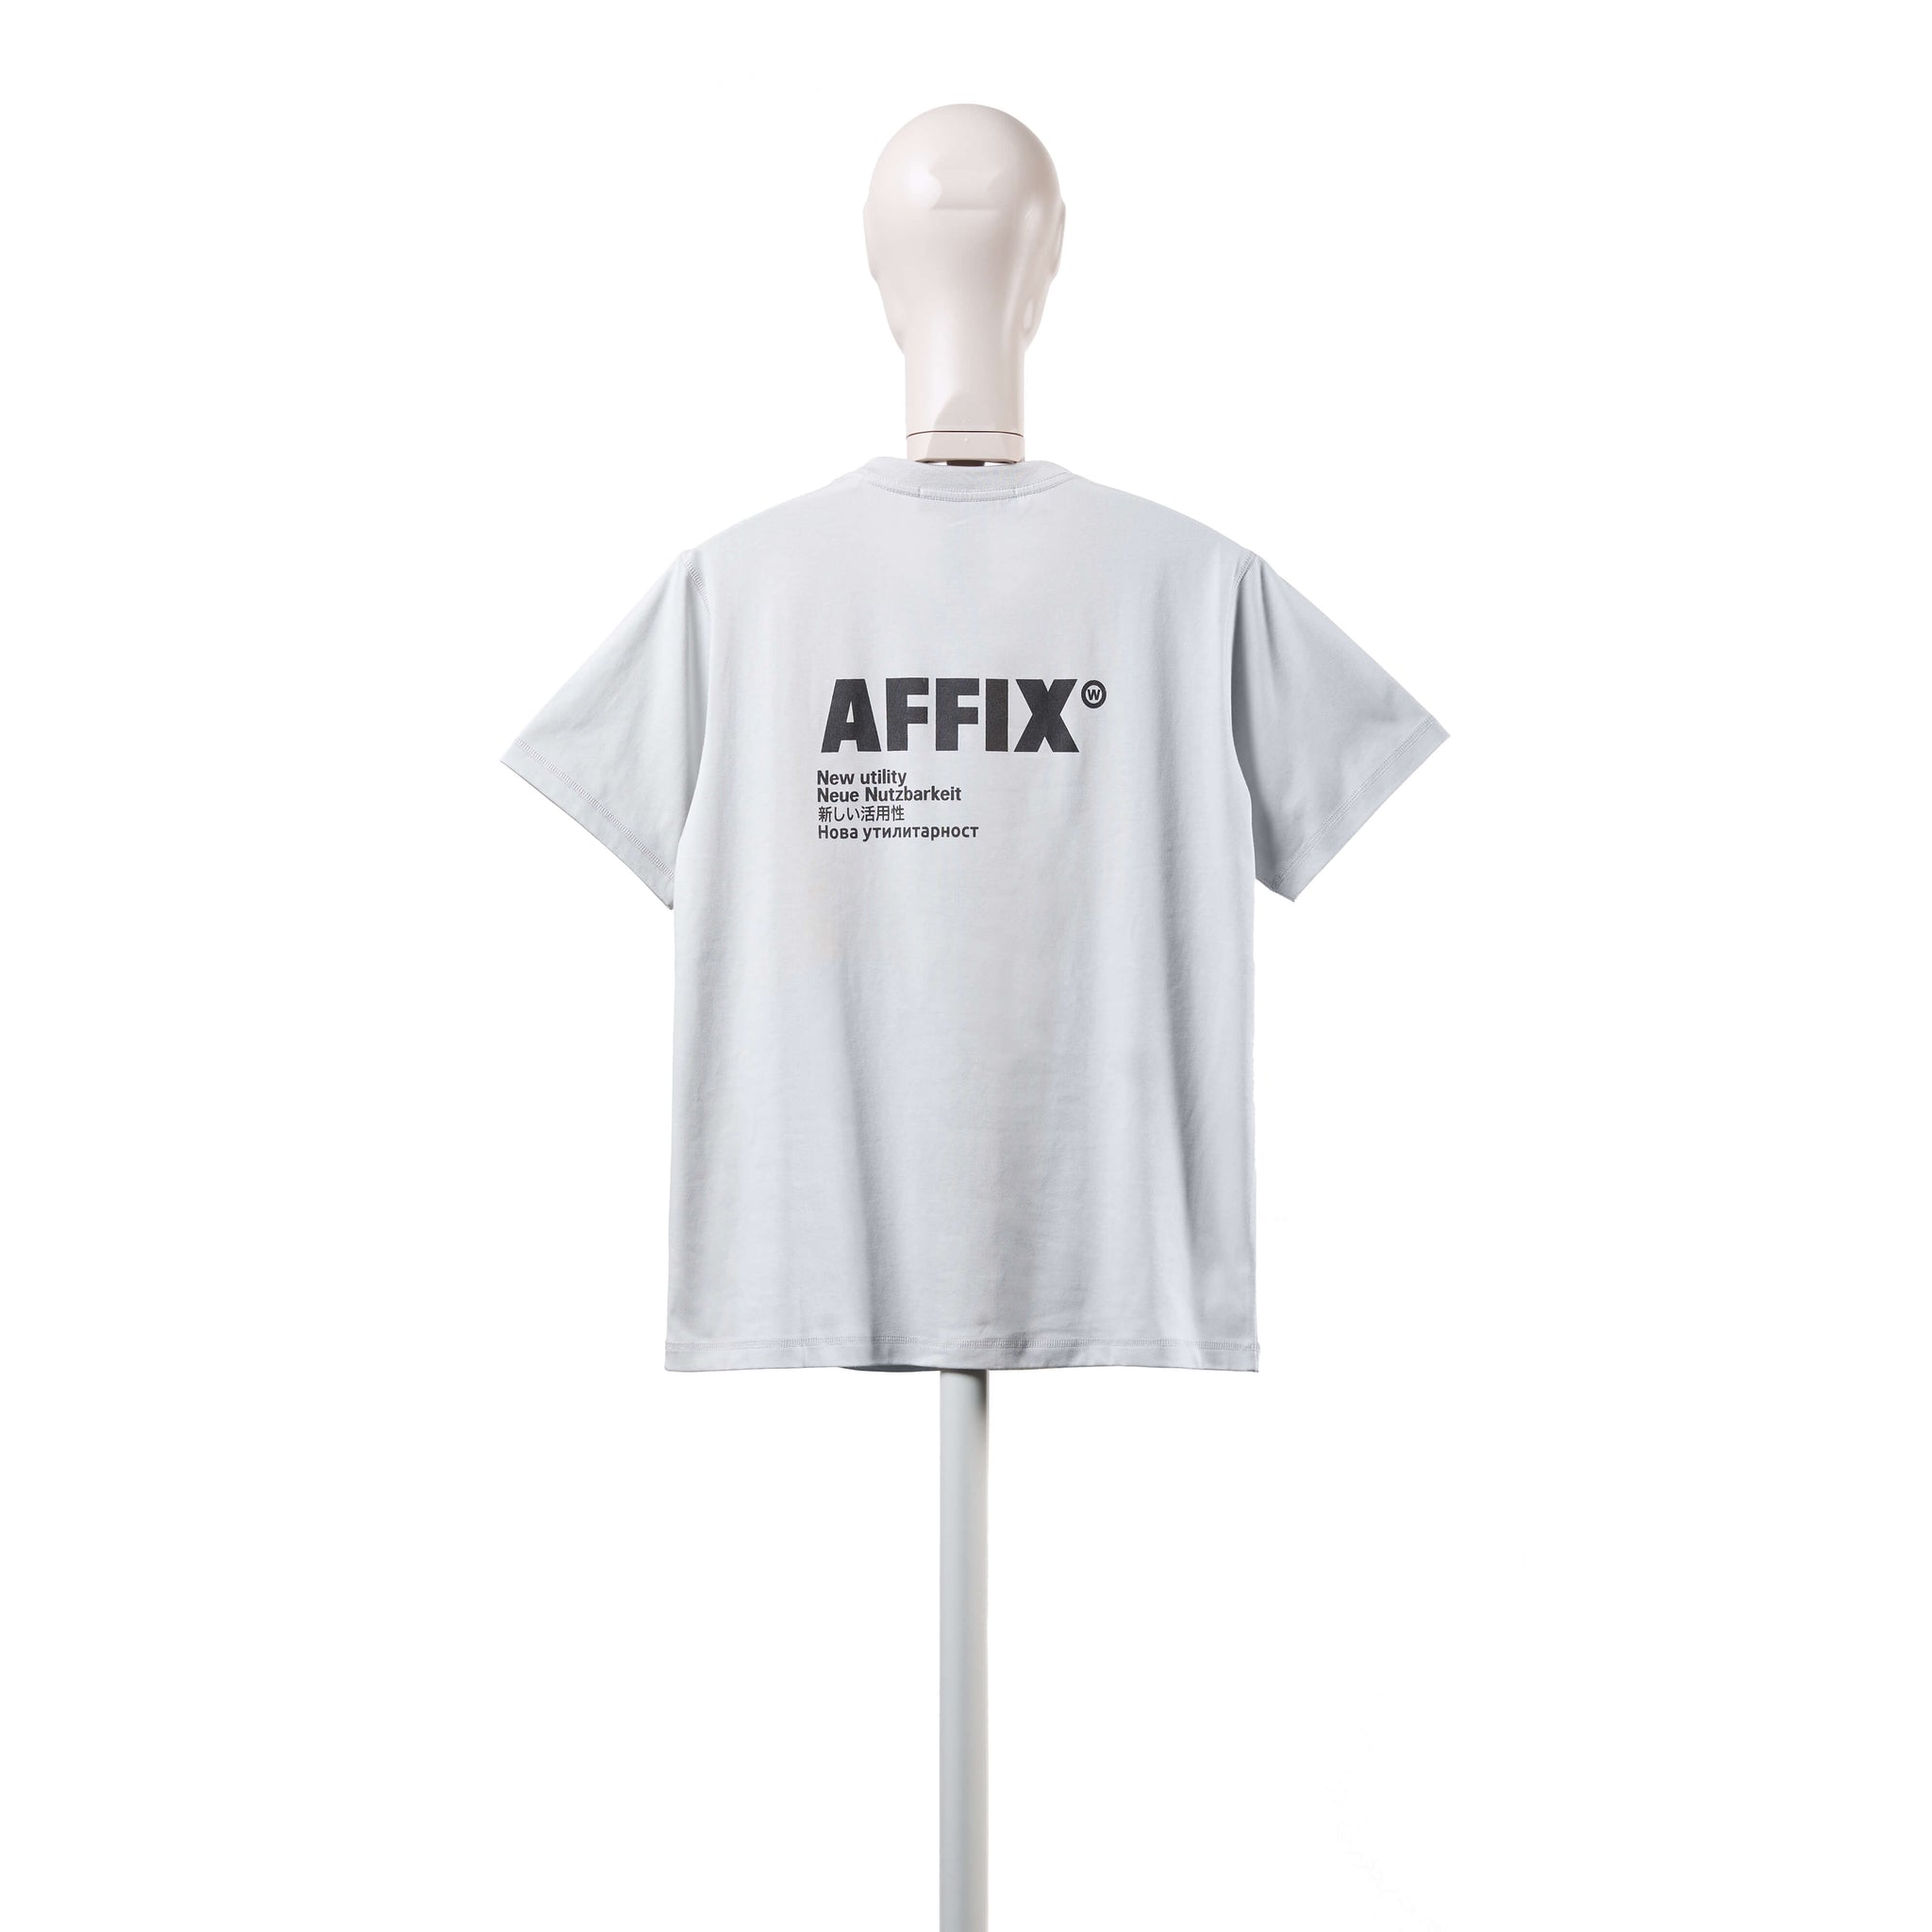 AFFIX WORKS AFFX WRKS STANDARDISED LOGO T-SHIRT POWDER GREY